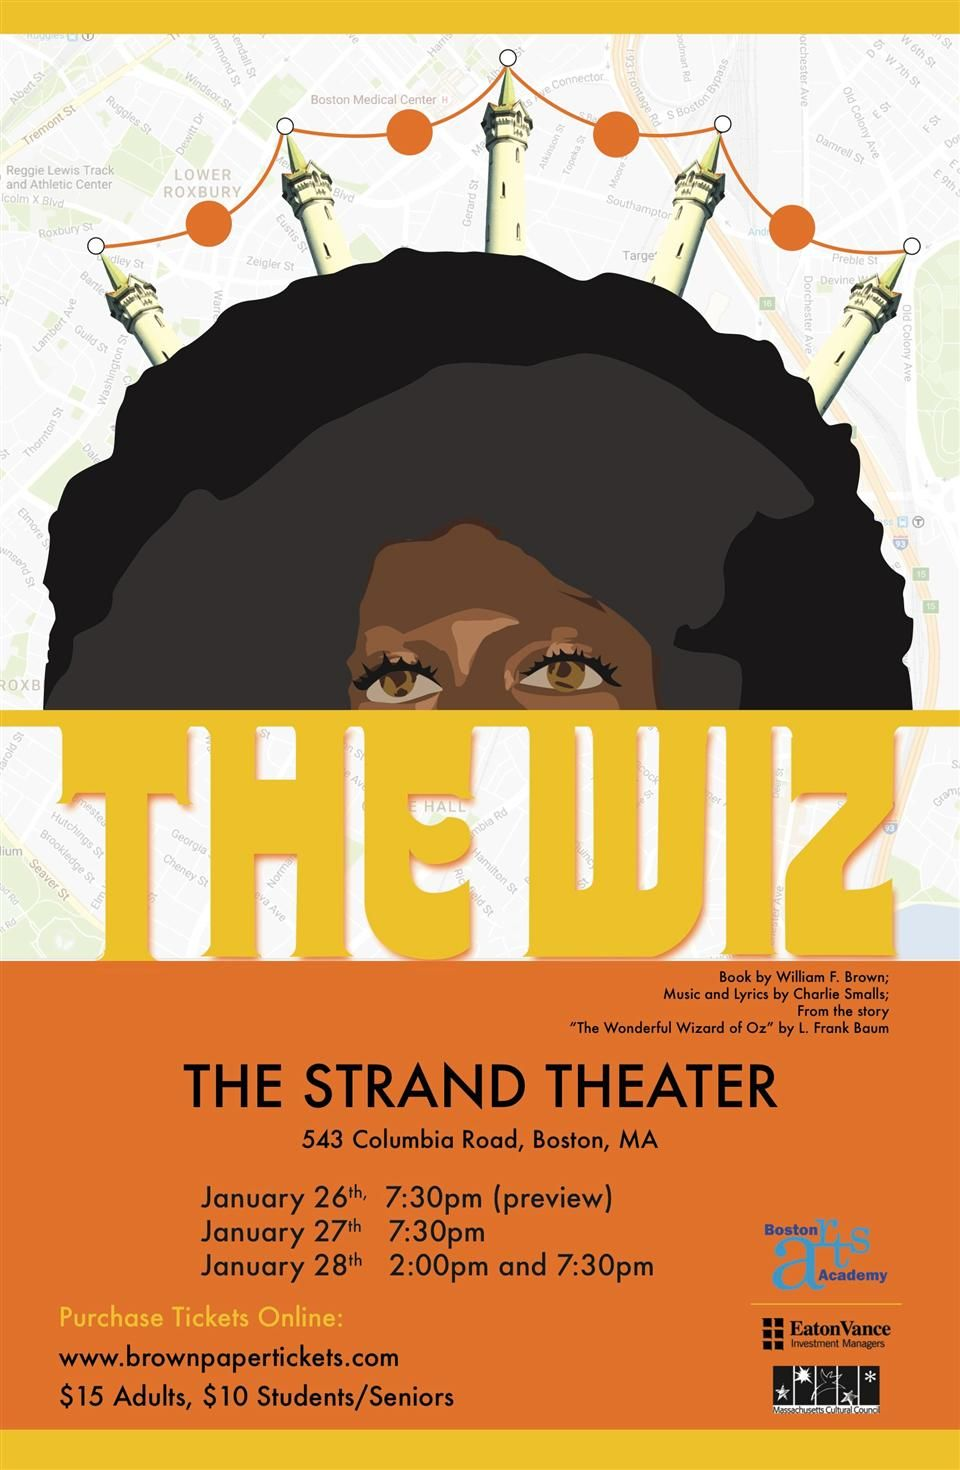 Flyer - Boston Arts Academy performs The Wiz at The Strand Theatre